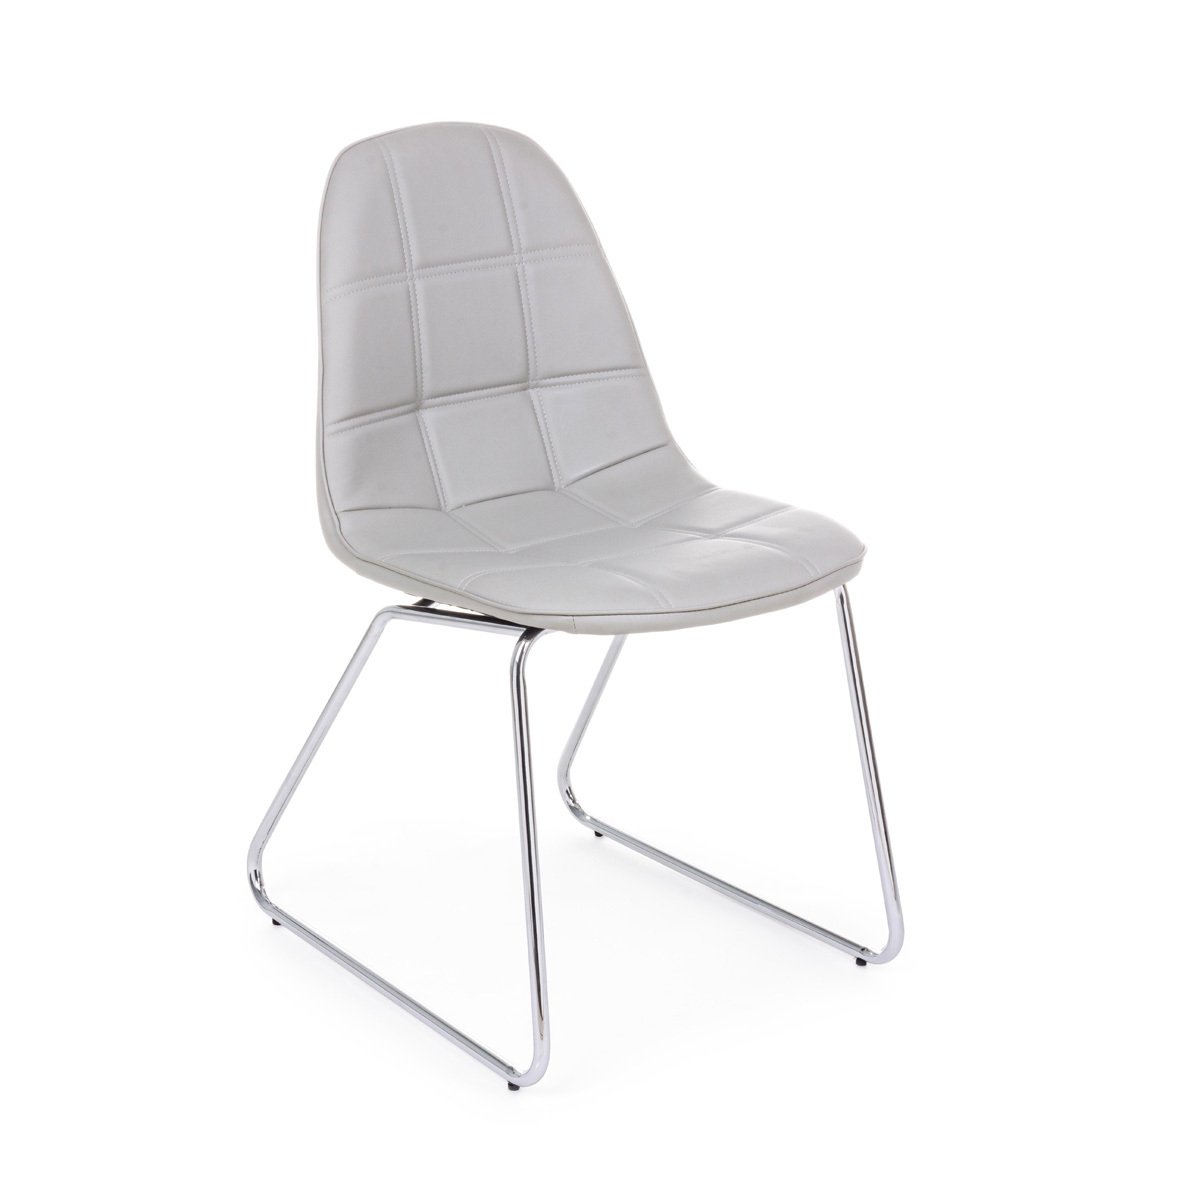 Photos 1: Bizzotto Chair in metal and eco-leather - corda 0731712